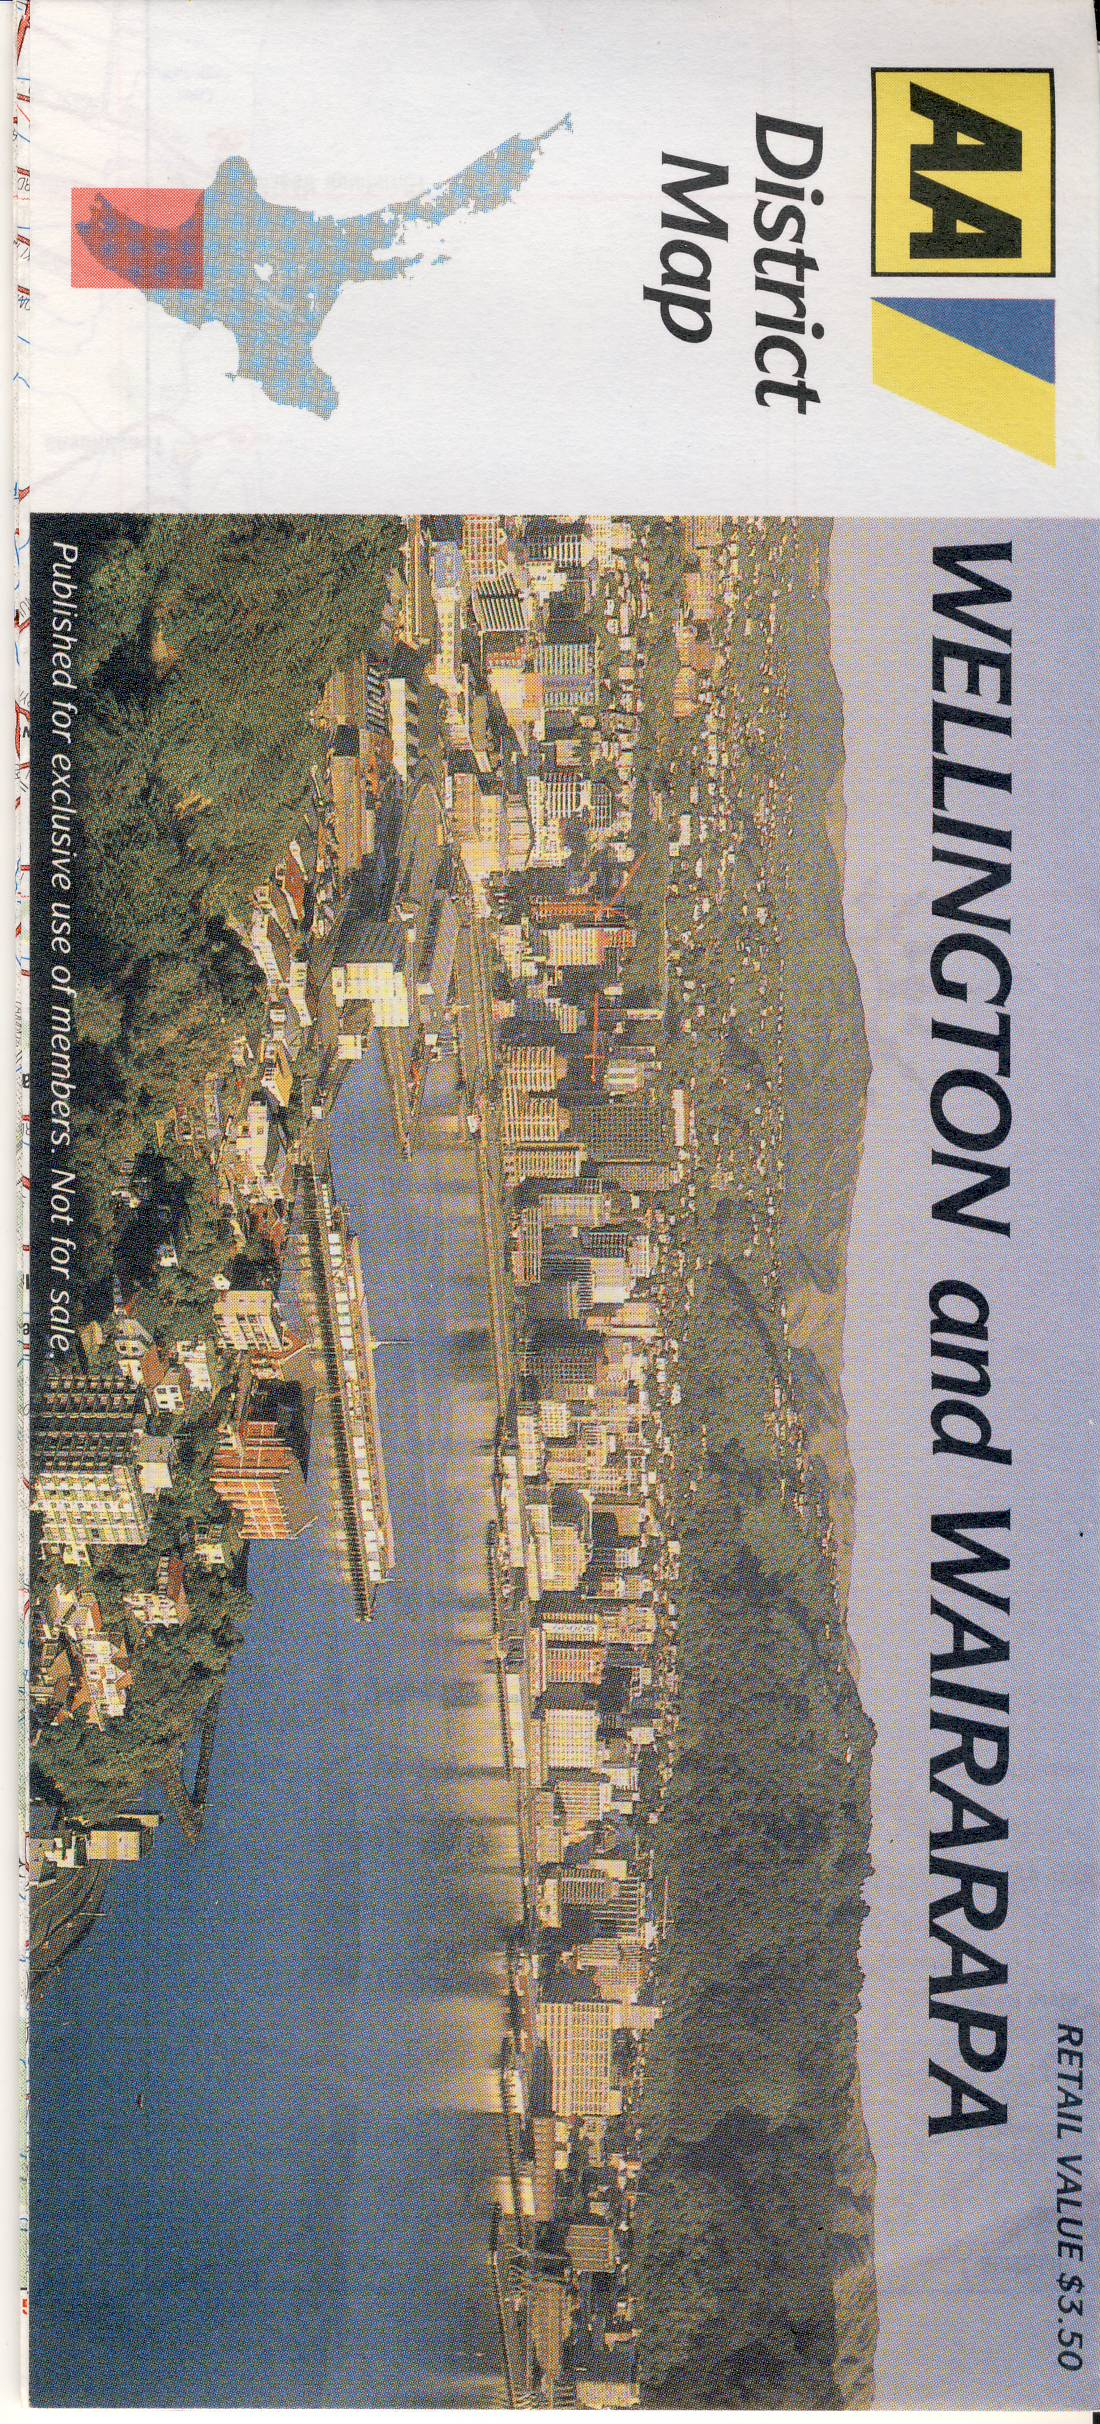 New Zealand WELLINGTON WAIRARAPA vintage District map refS5 Advert on the outside fold for The COACHMAN MOTEL Palmerston North measures approx  20cm x  9cm folded - map on one side - other side is text - pre-owned in very good condition.